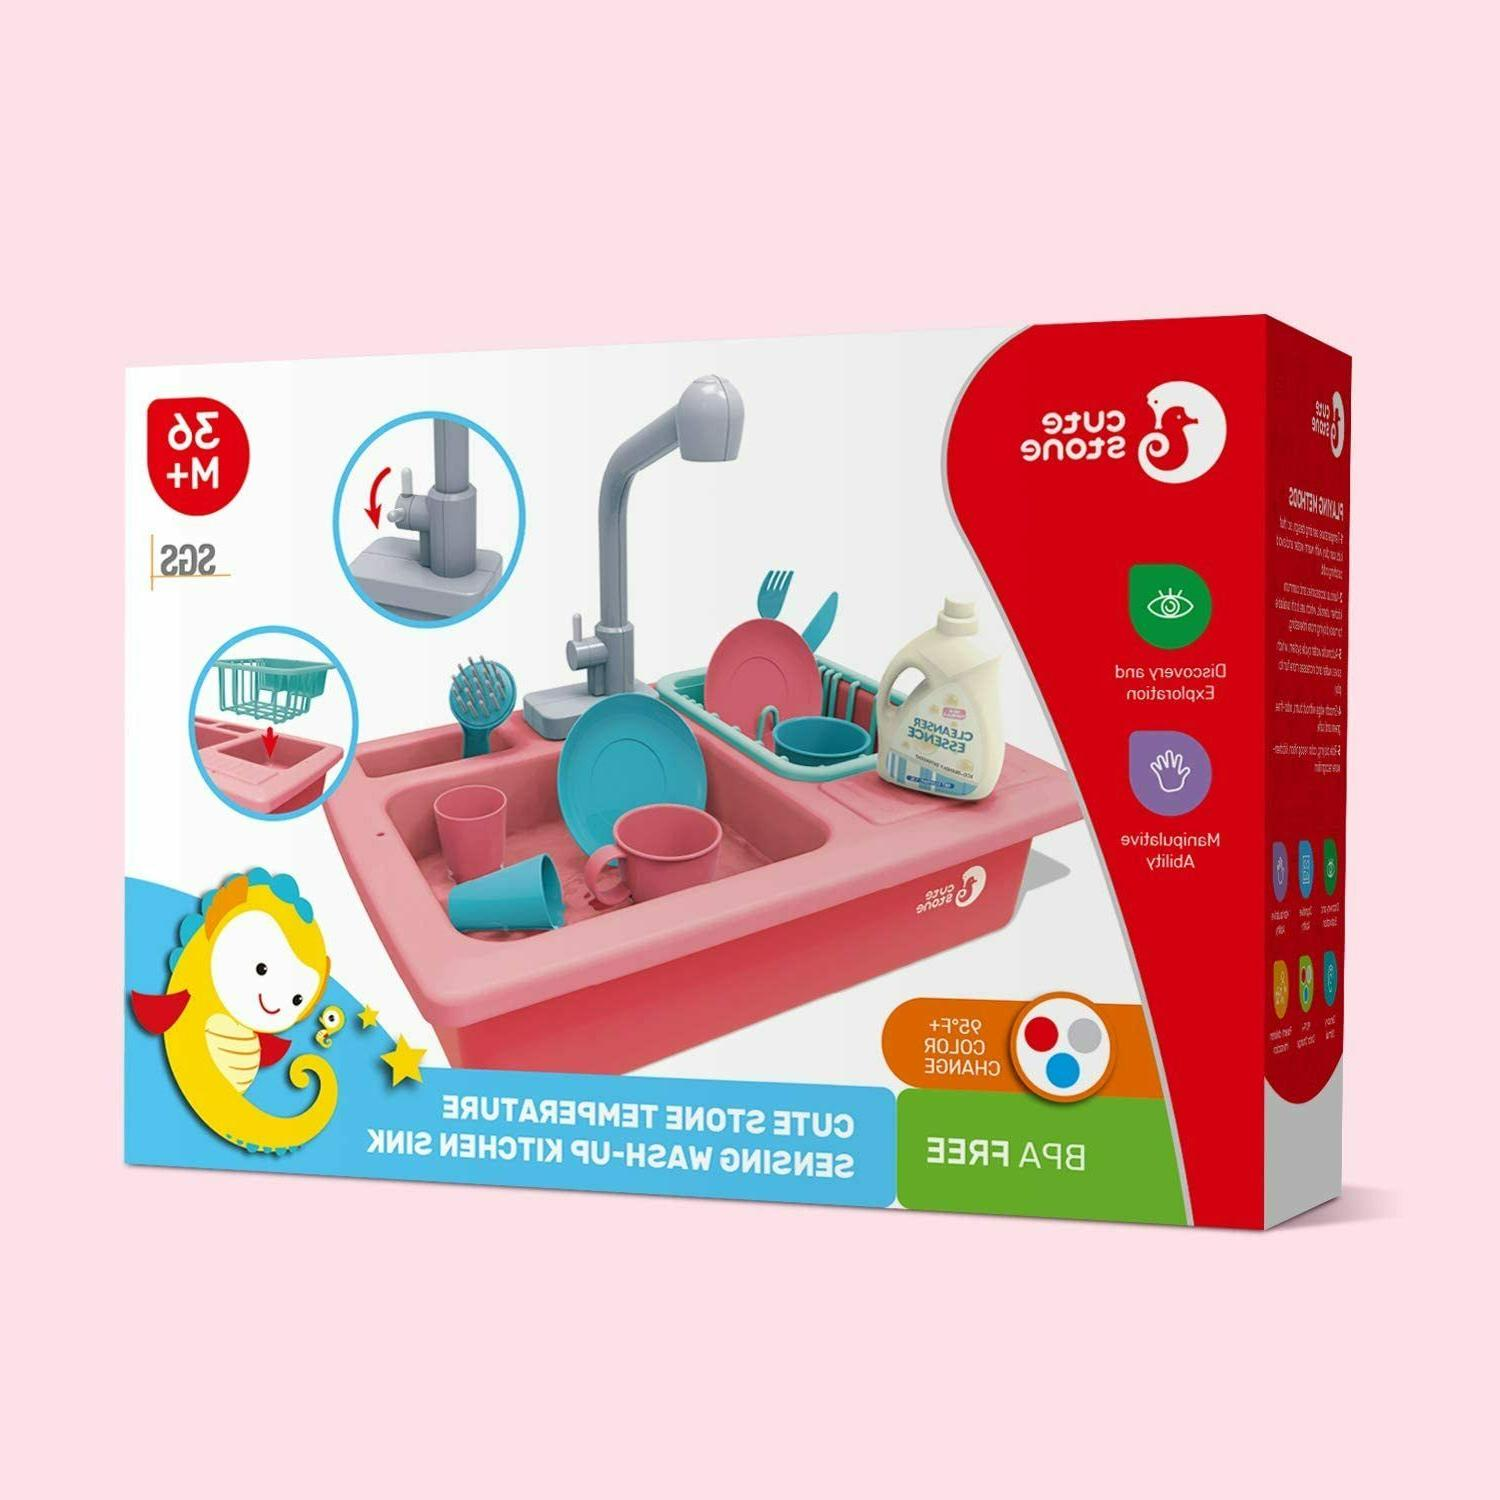 Color Kitchen Sink Toy for Kids Running Water